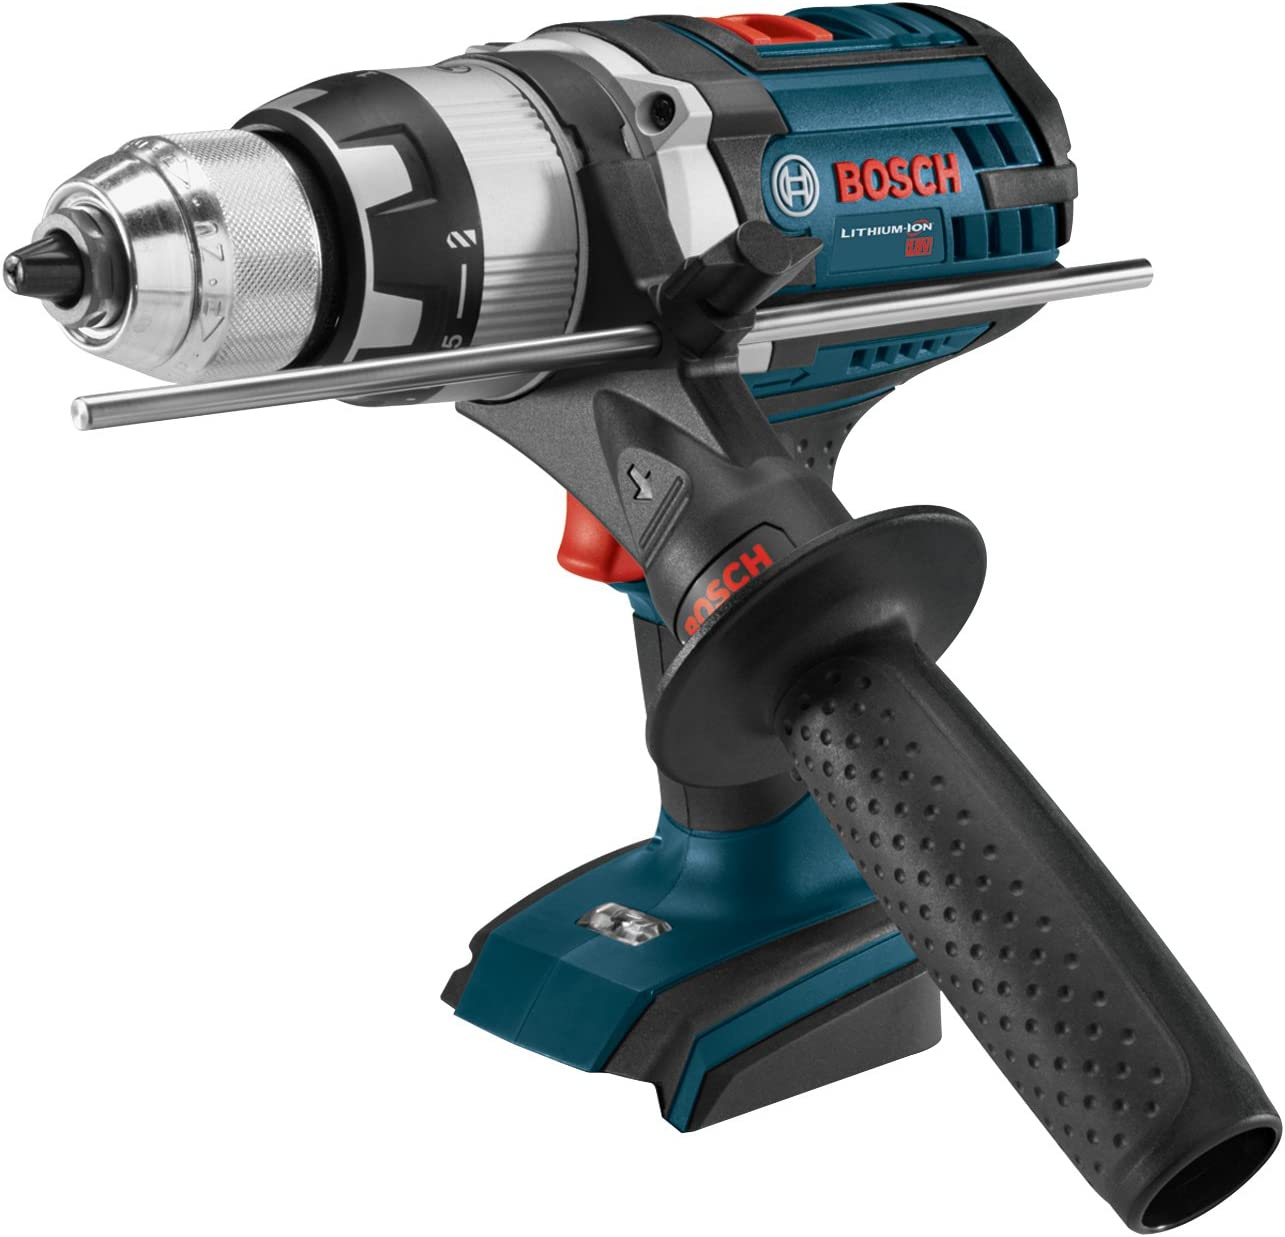 Bosch HDH181XB Bare-Tool 18V Brute Tough 1 2 Hammer Drill Driver with Active Response Technology